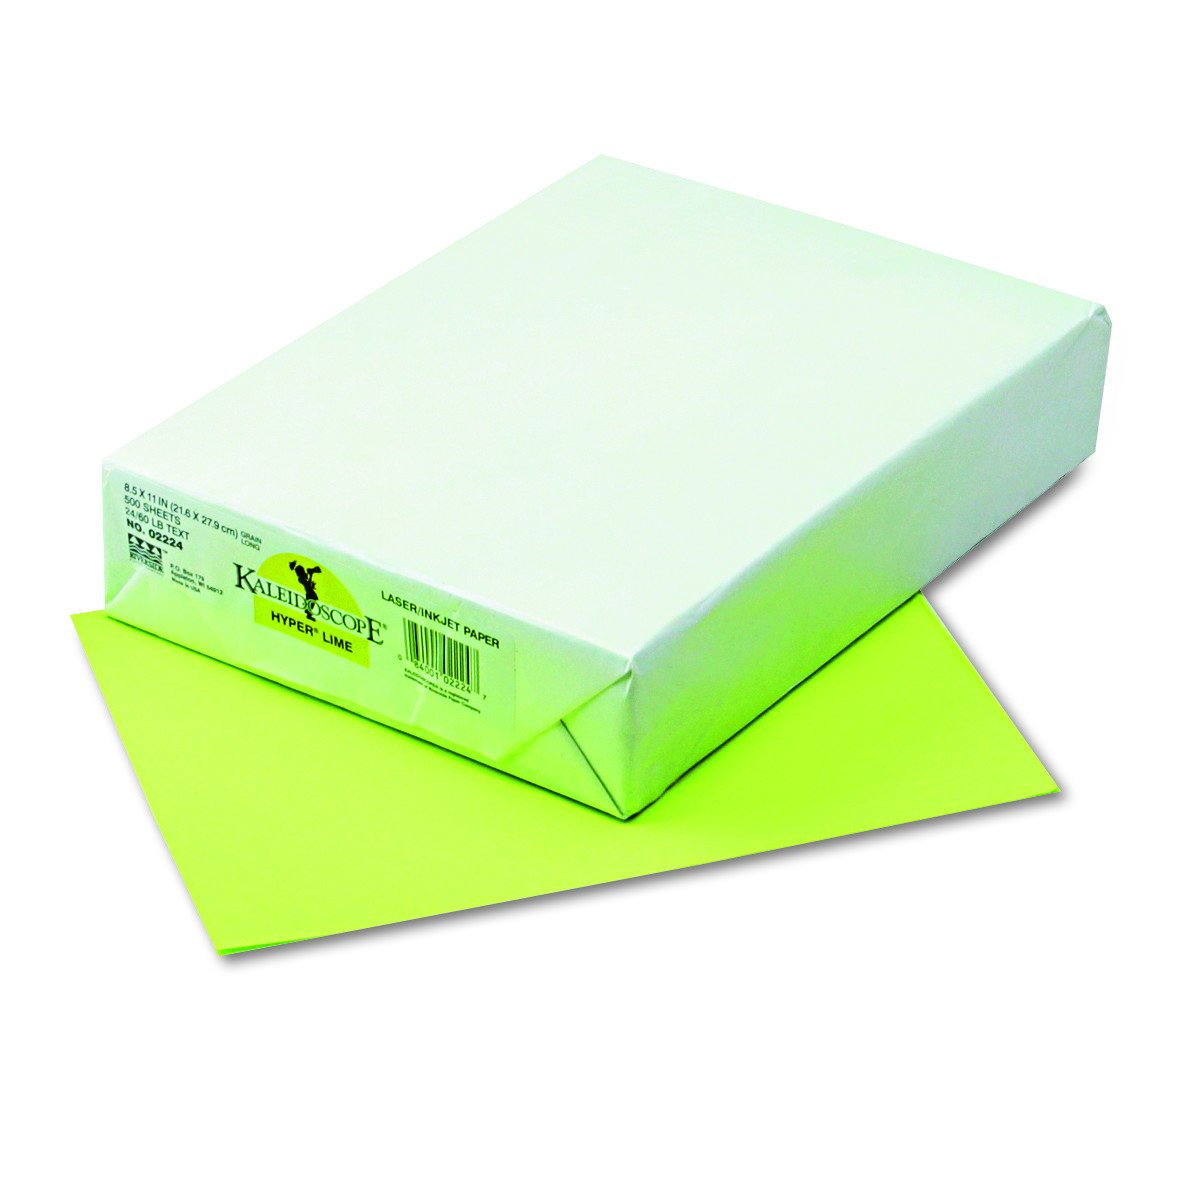 Kaleidoscope Multi-Purpose Paper, 8.5 x 11 Inches, Hyper Lime, 500 Sheets (102224)